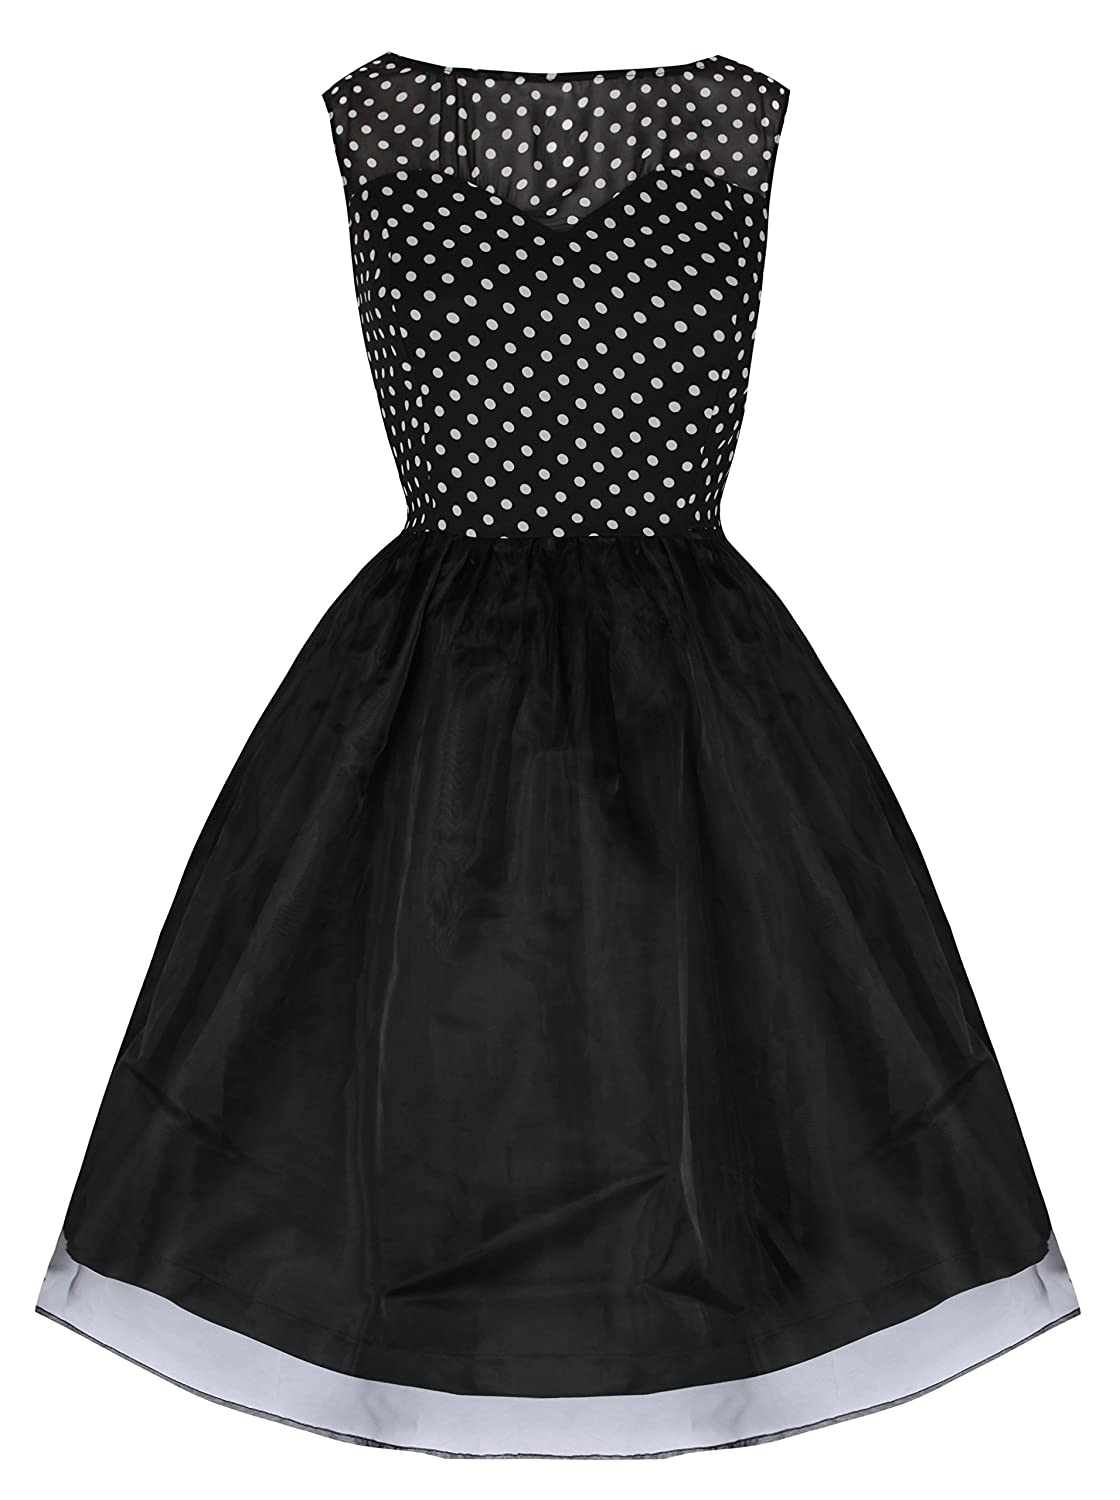 Vintage Inspired Halloween Costumes Lindy Bop Violetta Delightfully Adorable 50s Inspired Polka Swing Dress $15.00 AT vintagedancer.com